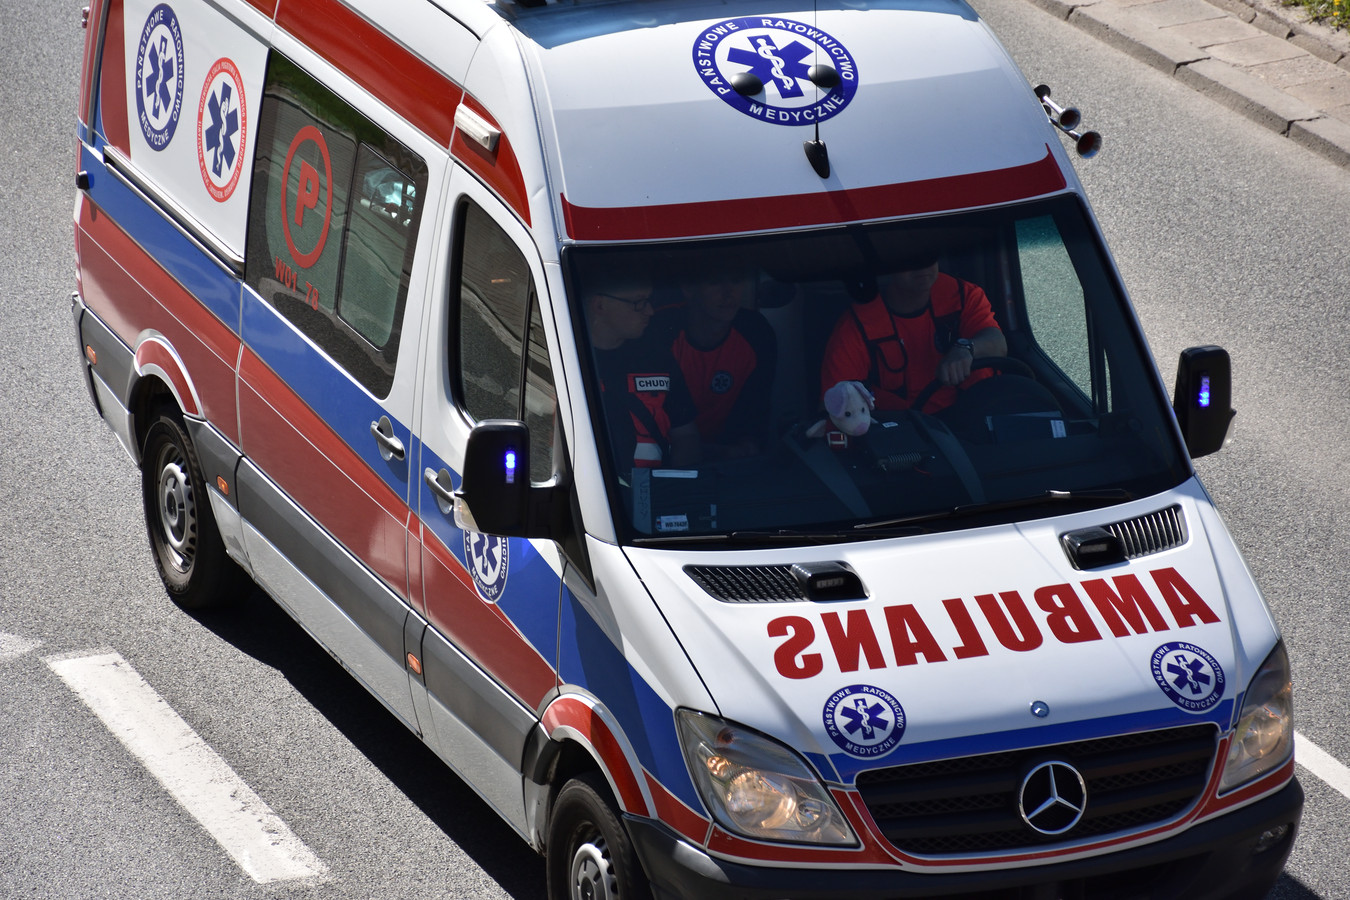 Een Poolse ambulance. Foto als illustratie.